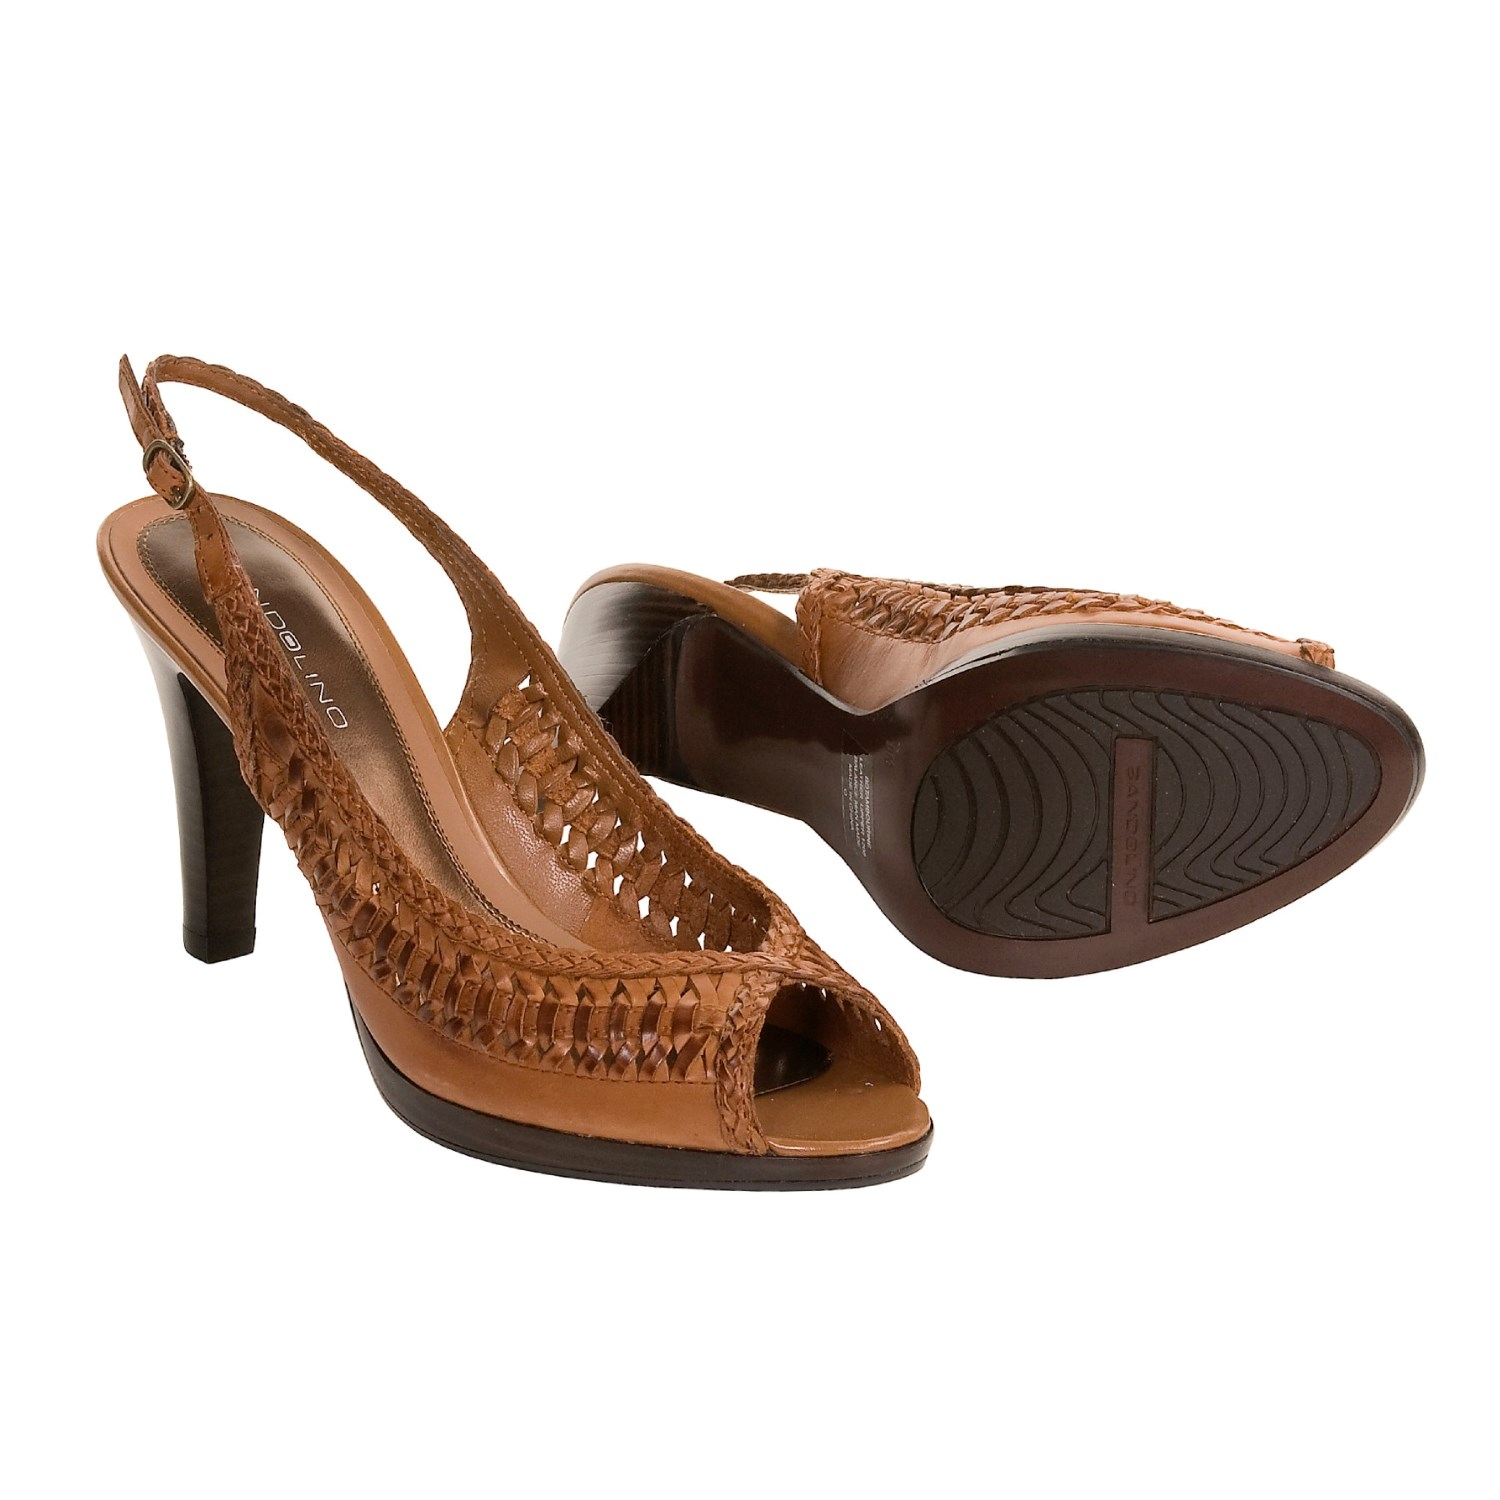 Slip On Shoes For Women With No Backs